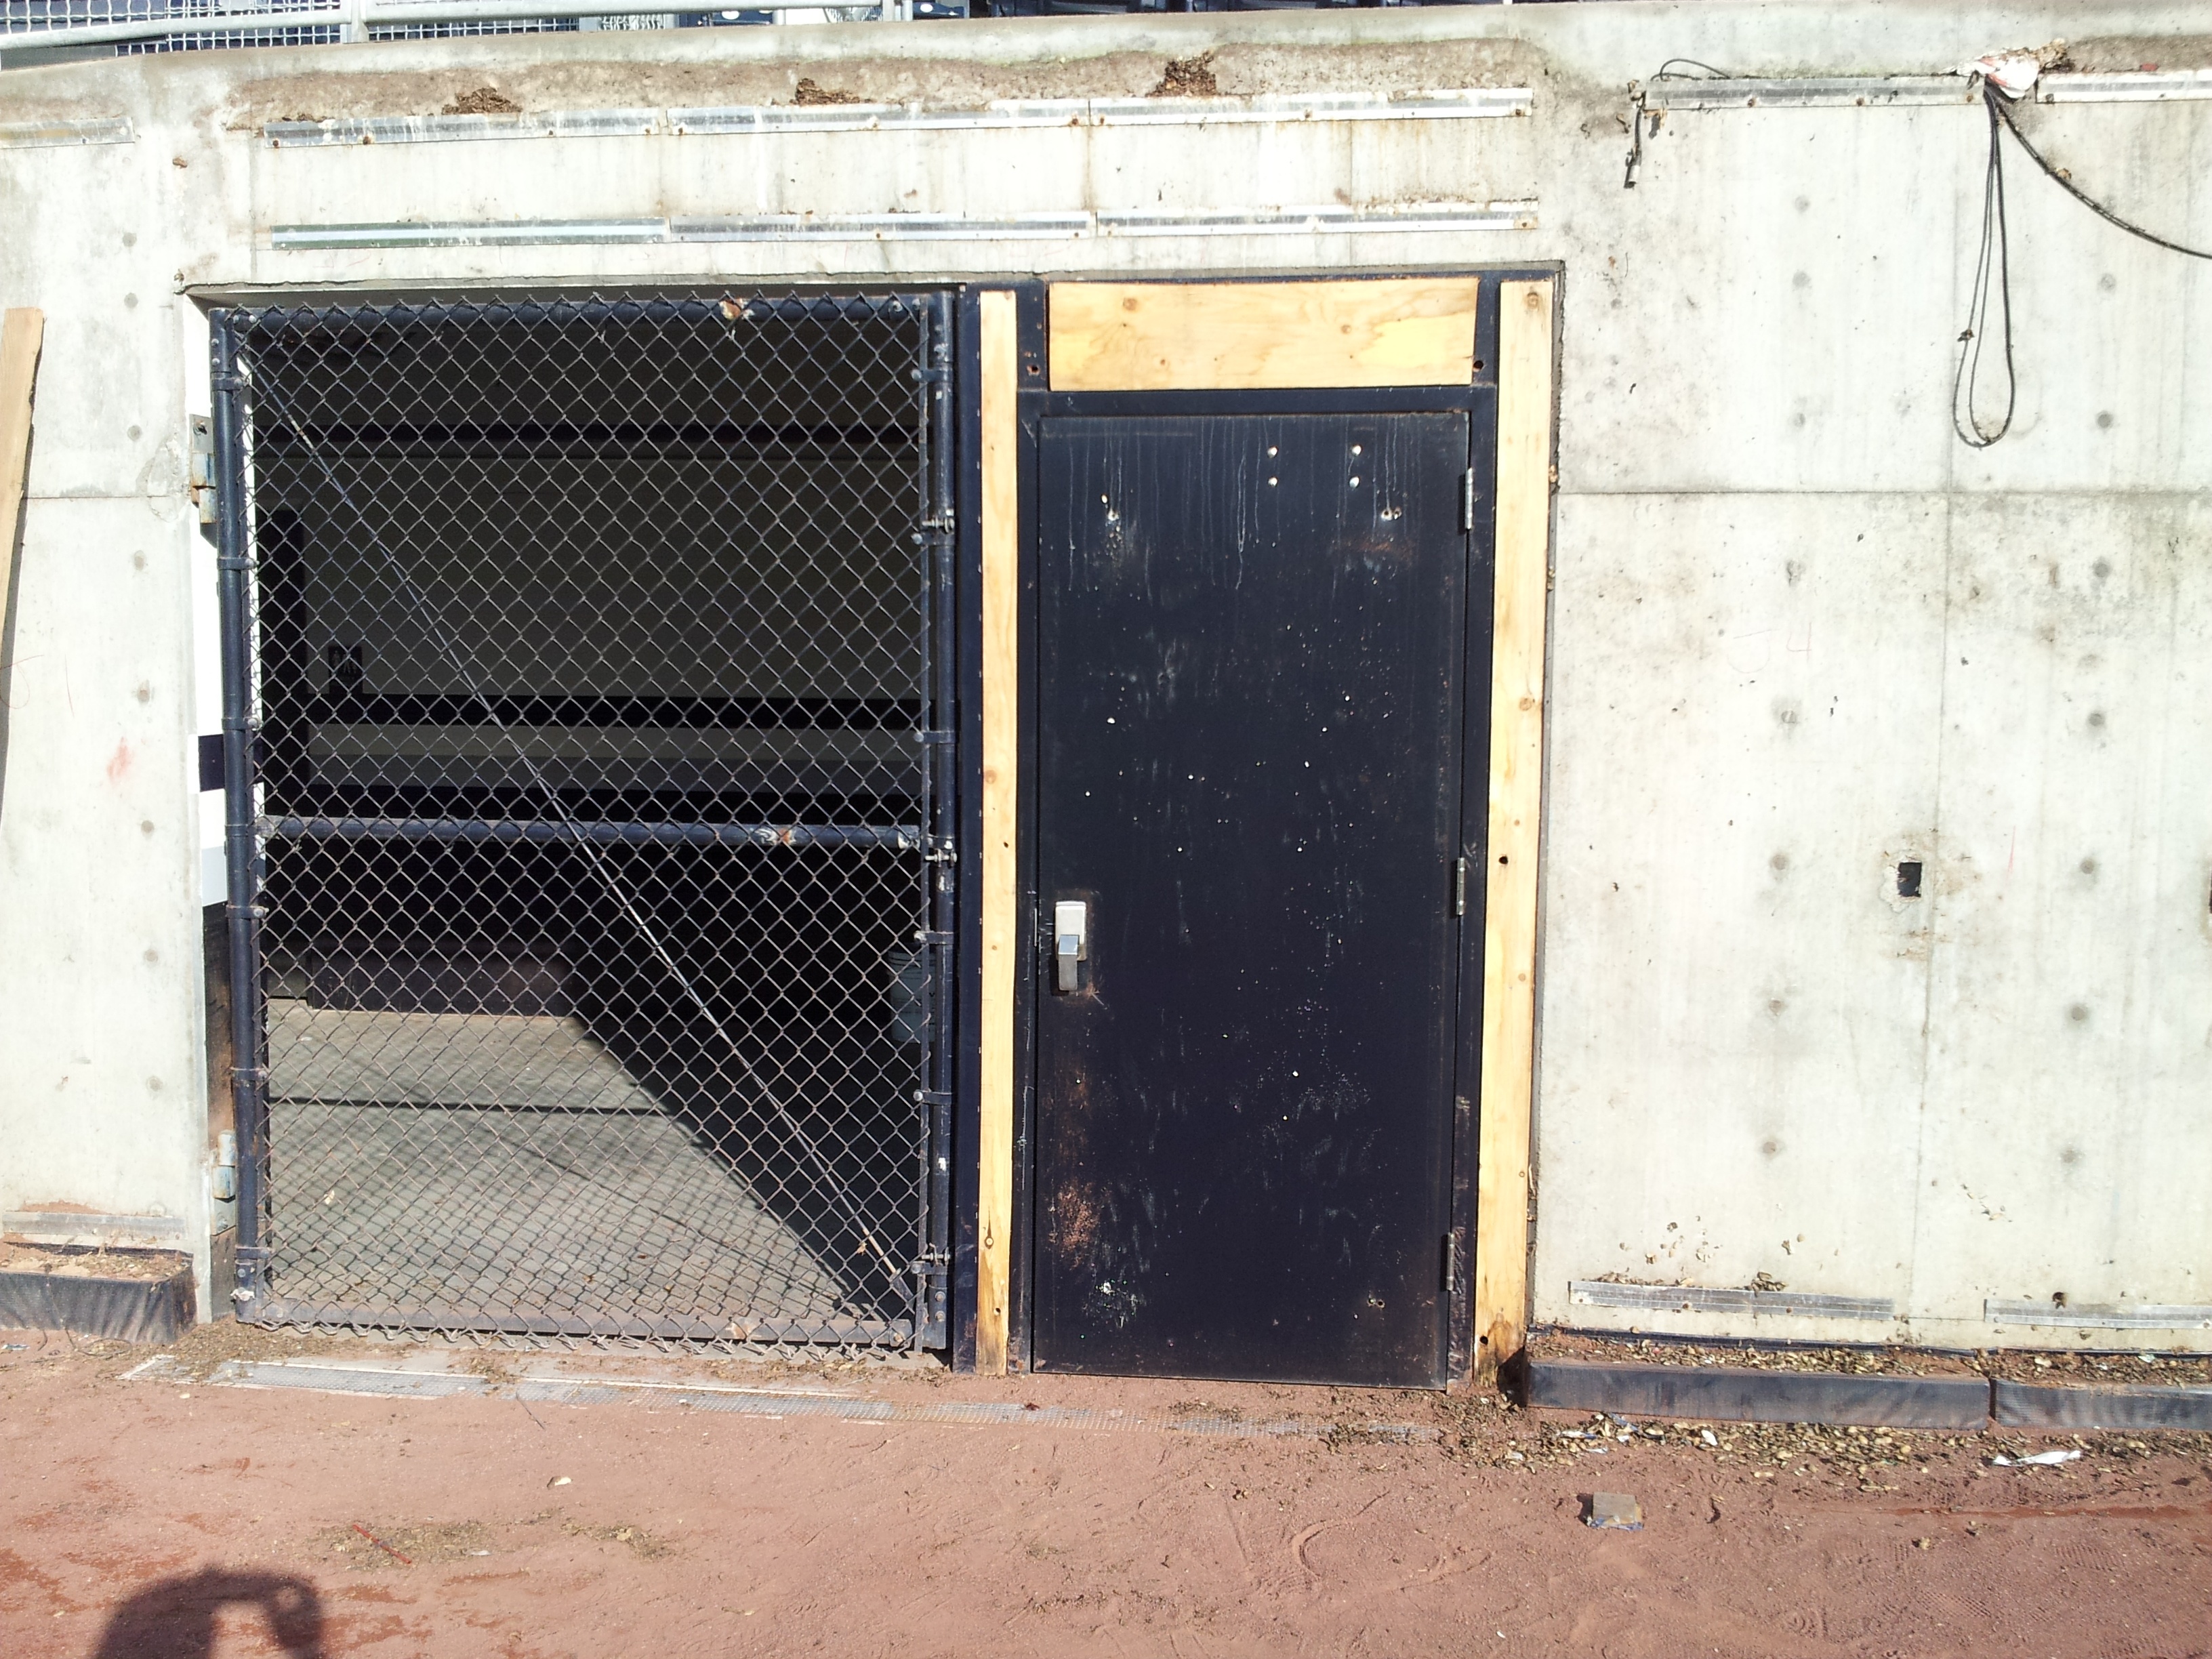 Field - Wall Pads - Gate Padding - D